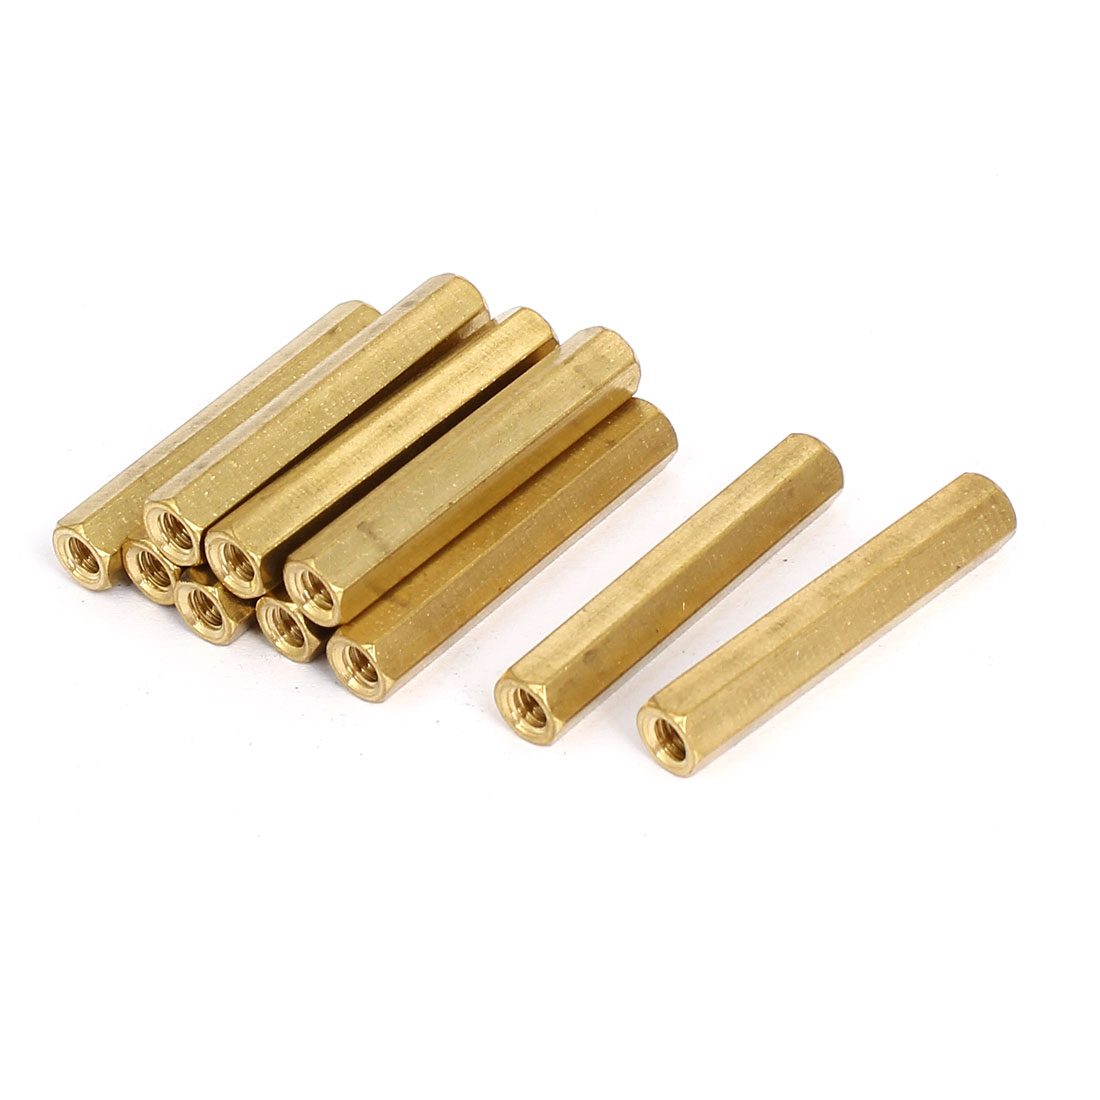 M4x35mm Brass Hex Hexagonal Female Thread PCB Standoff Spacer 10pcs